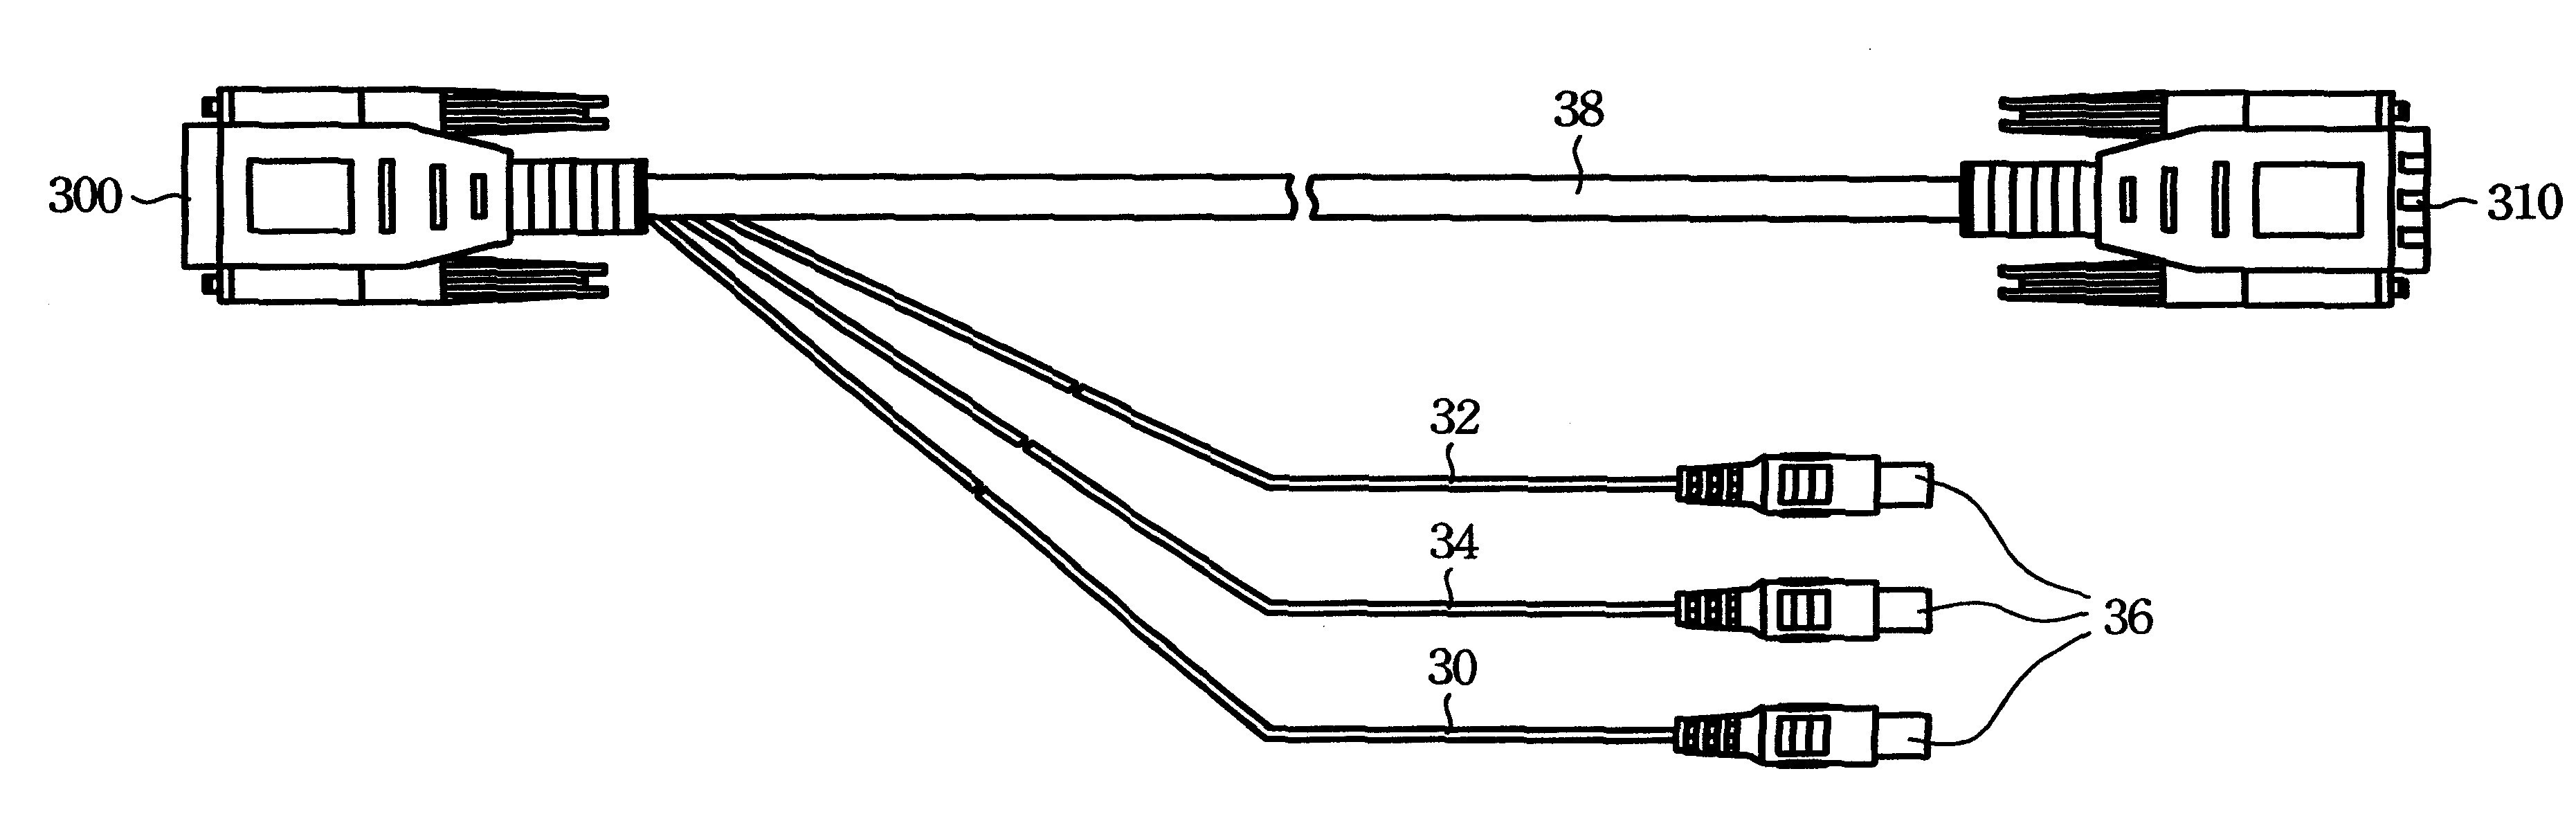 Rack and Pinion Schematic Diagram Diagram Rca Trusted Wiring Diagrams • Of Rack and Pinion Schematic Diagram